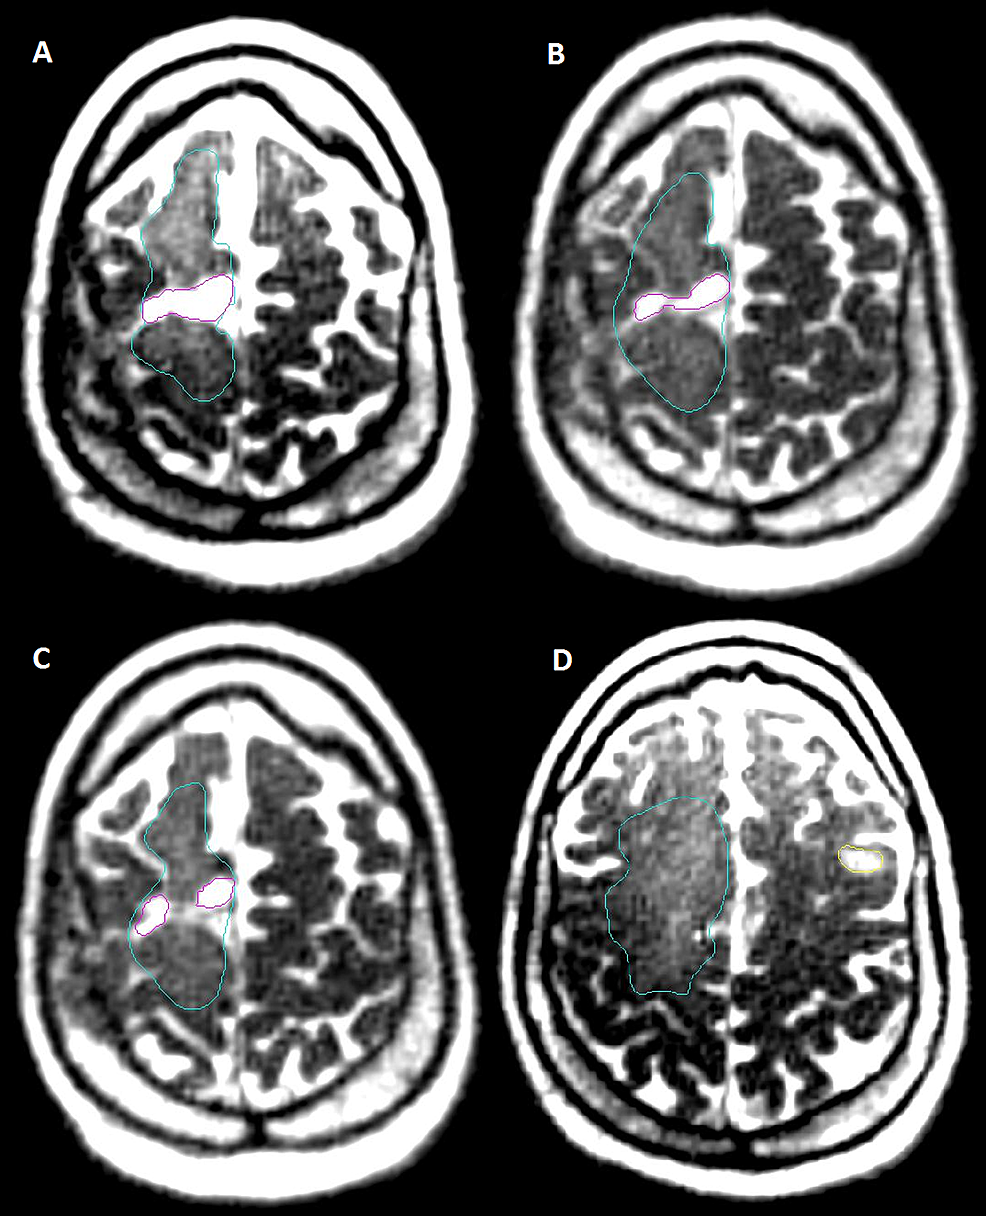 Patient-3:-Cavity,-Edema,-and-Secondary-Tumor-Simulation,-Fraction-1,-15,-30-Daily-Magnetic-Resonance-Imaging-(MRI)